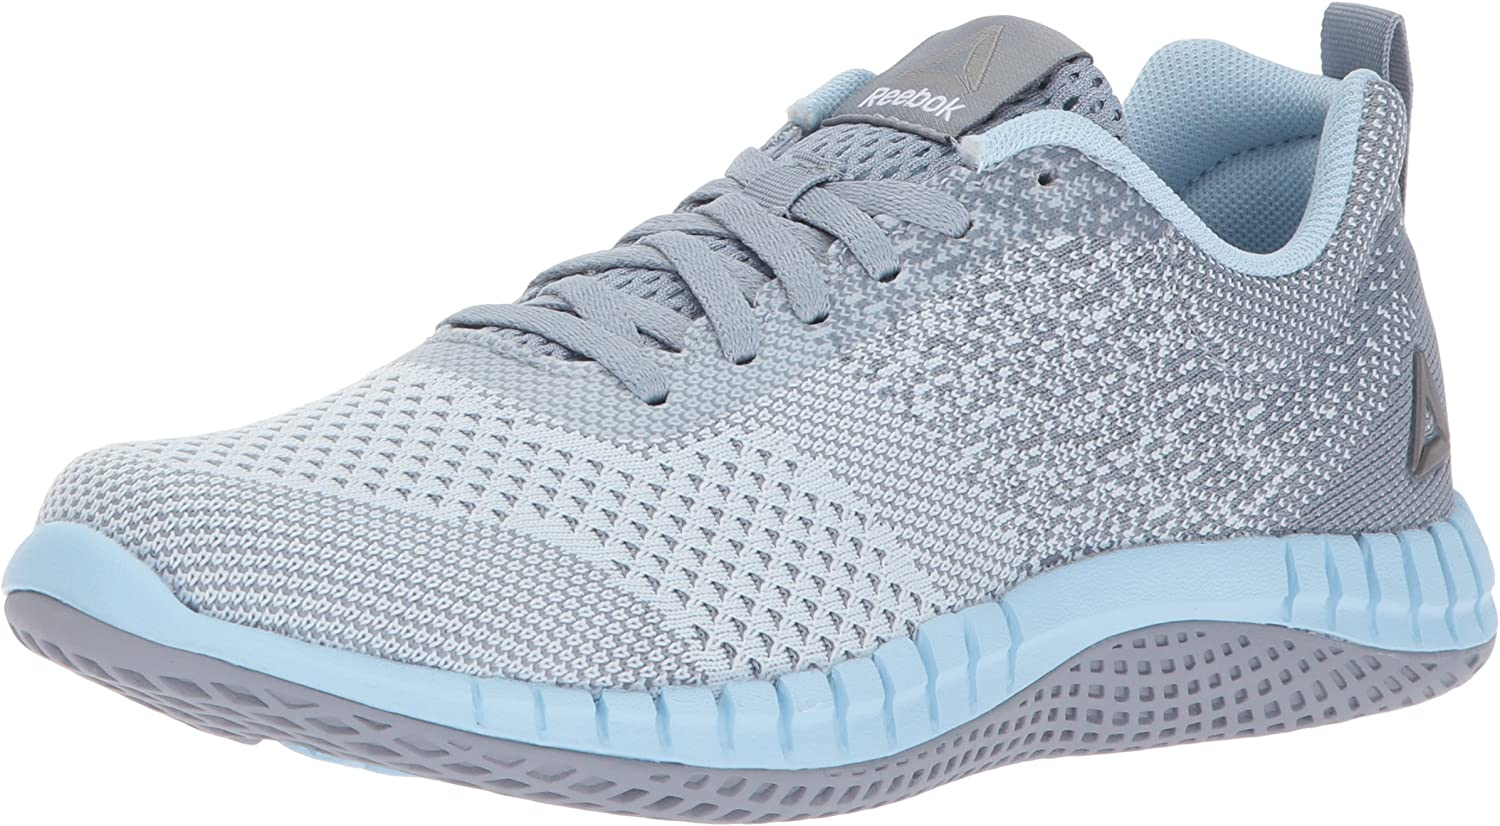 Reebok Women s Print Run Prime Ultk Running Shoe